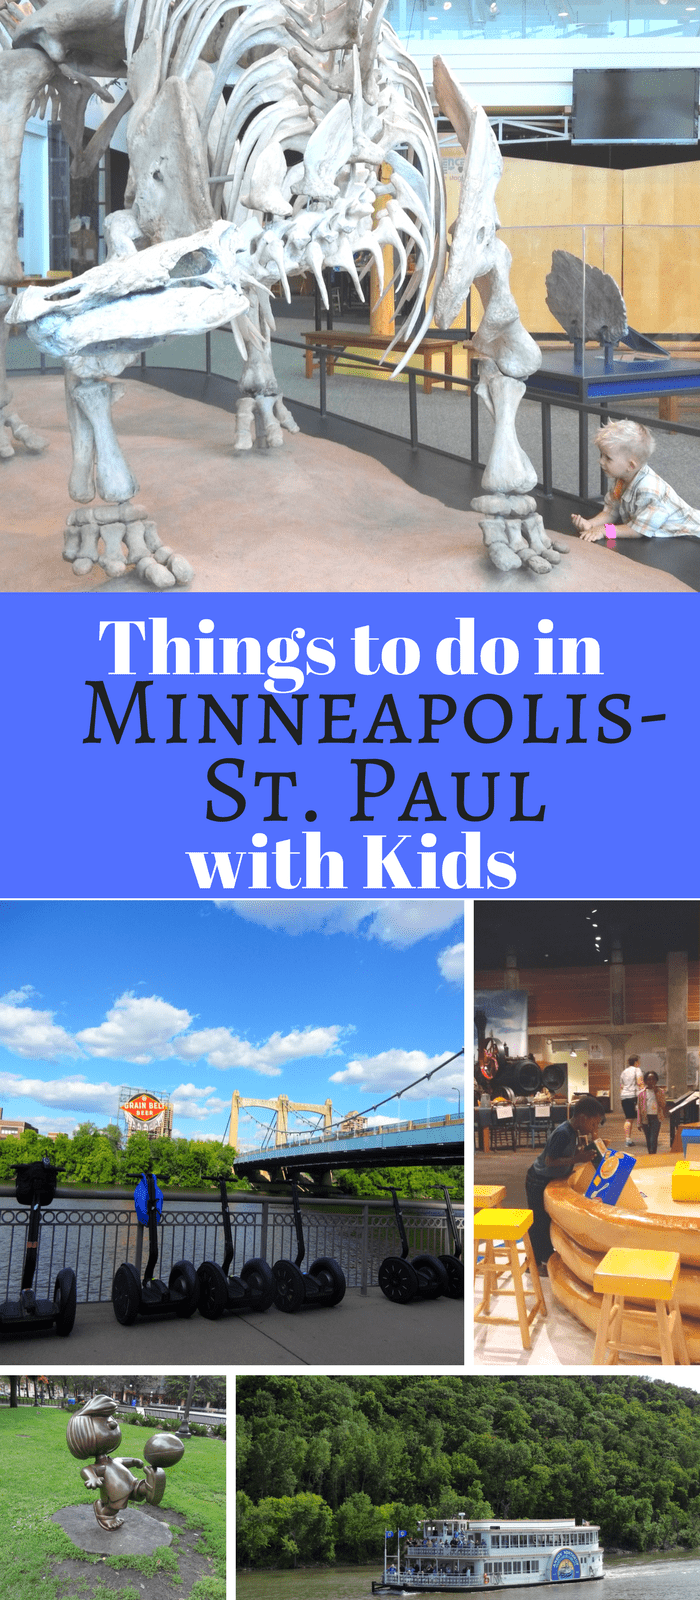 How to Spend Your Time in Minneapolis & St. Paul